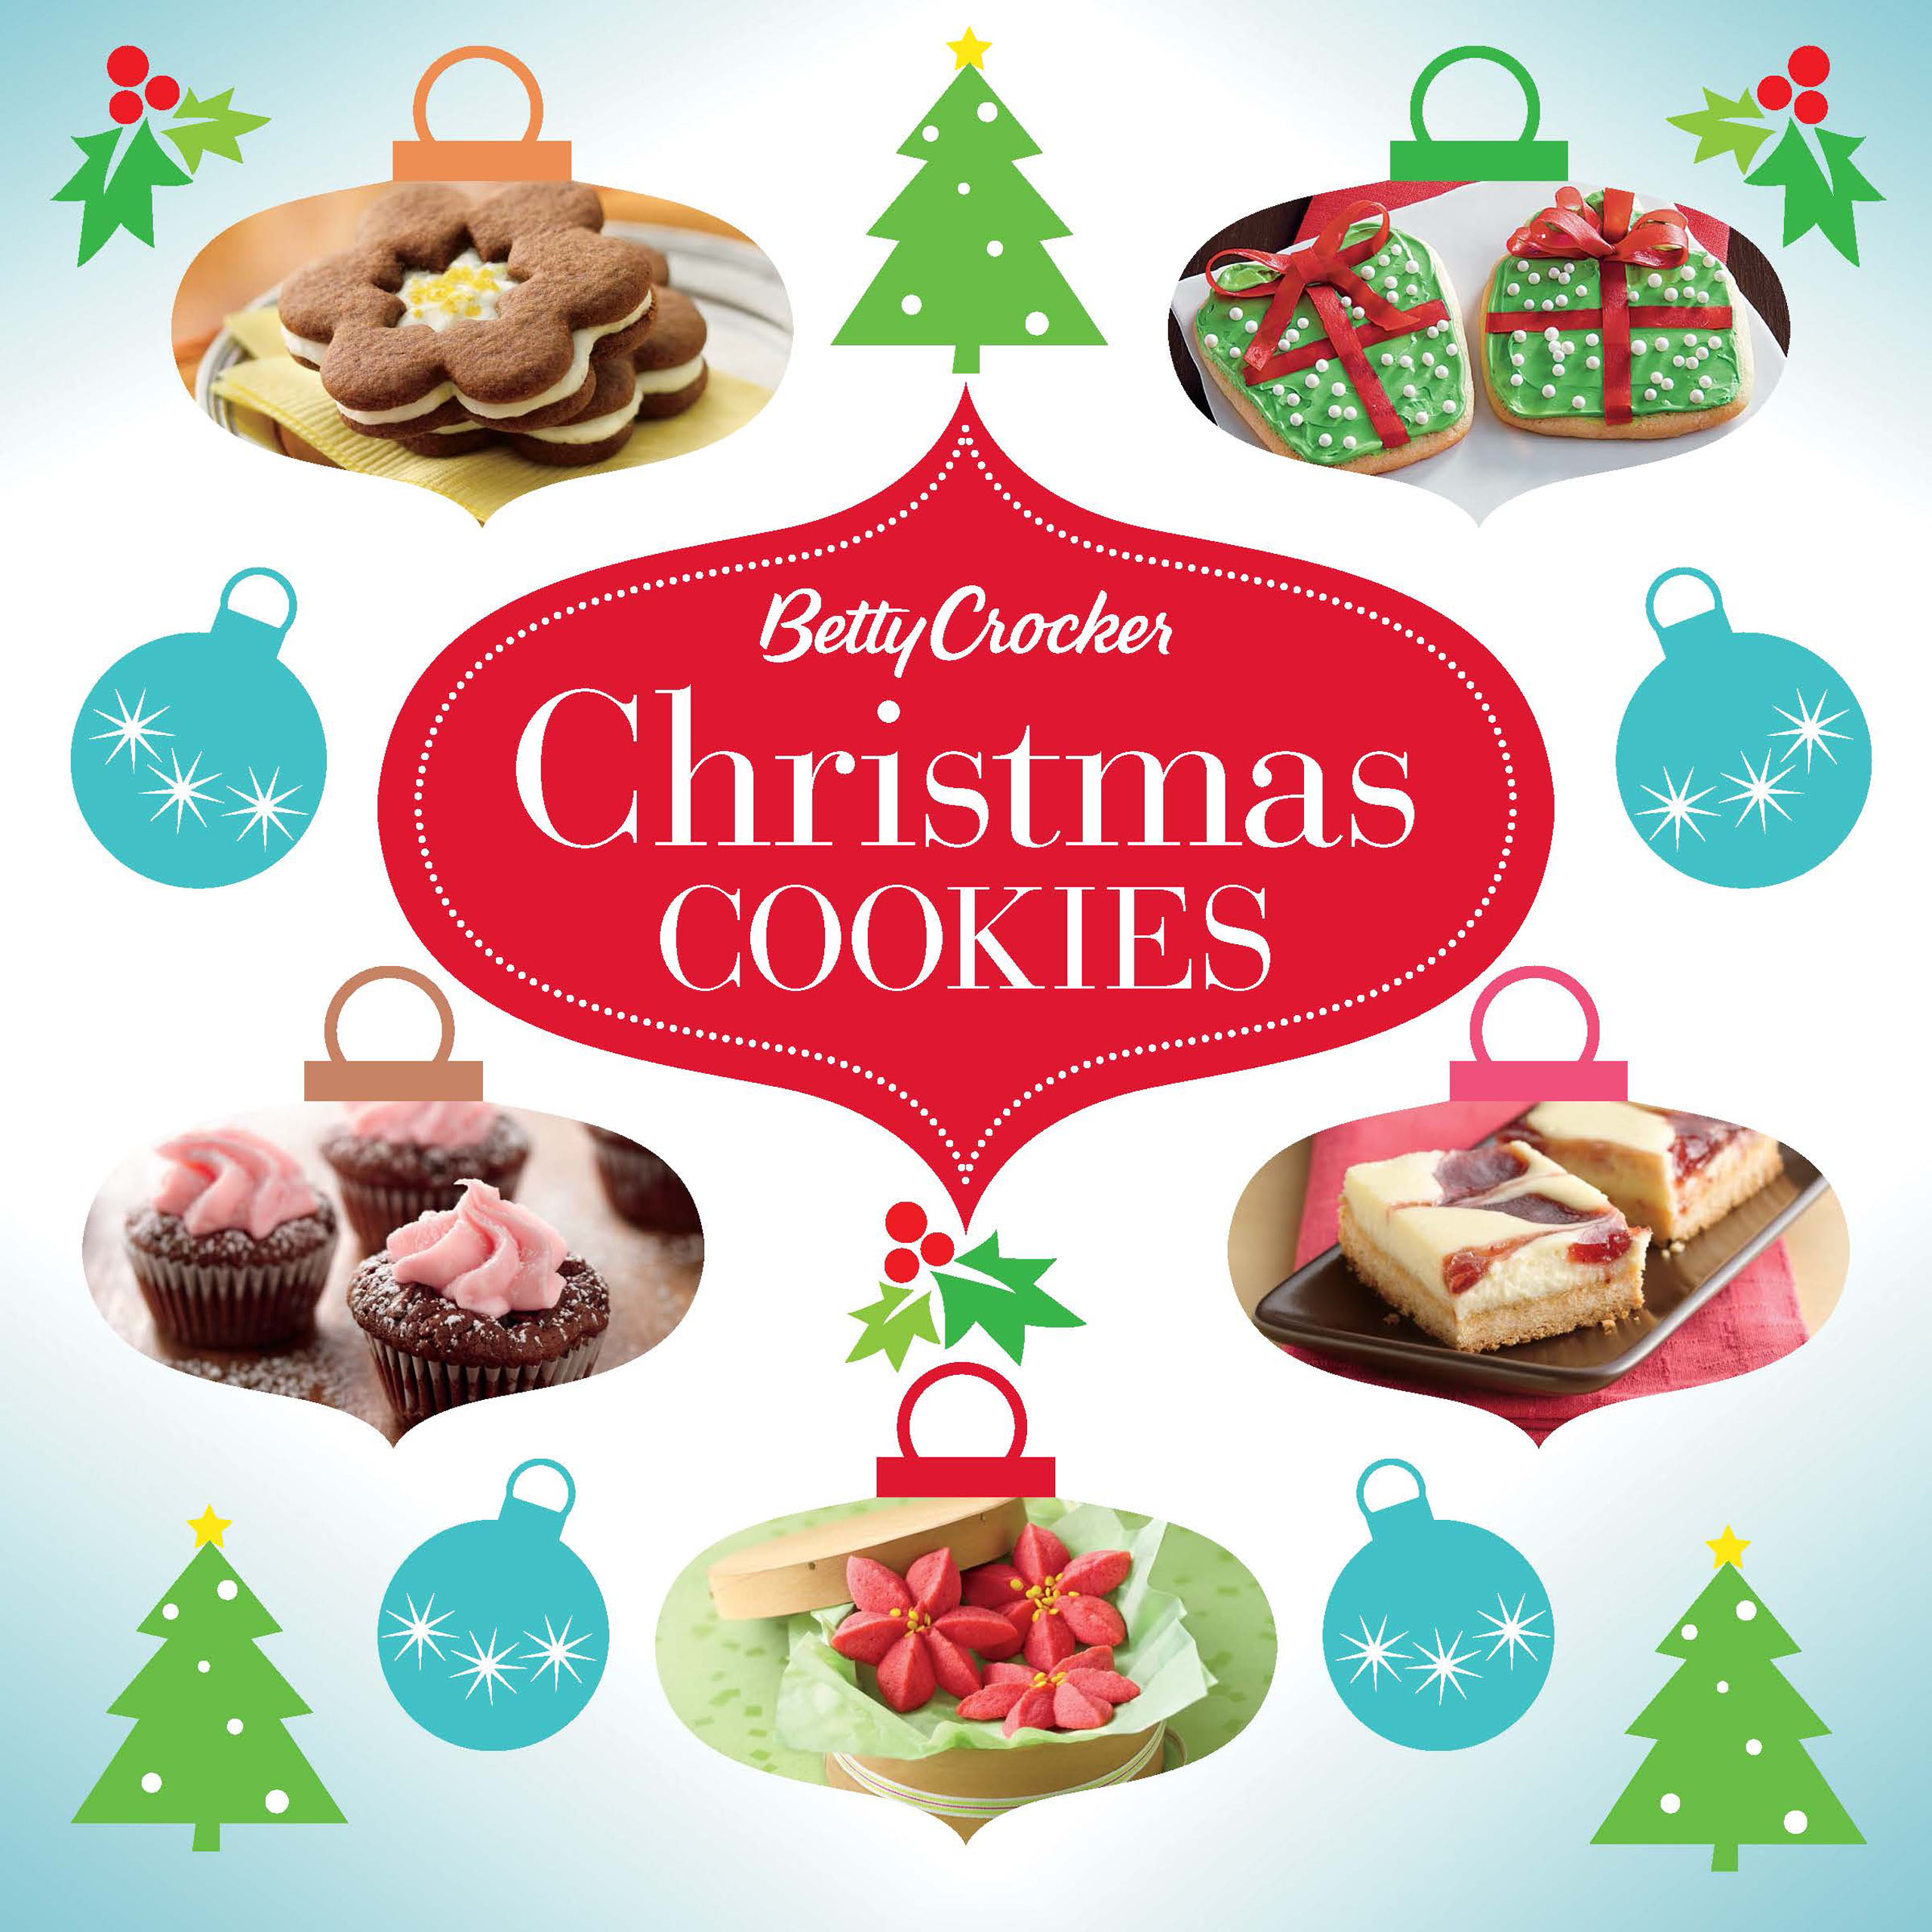 Betty Crocker Christmas Cookies